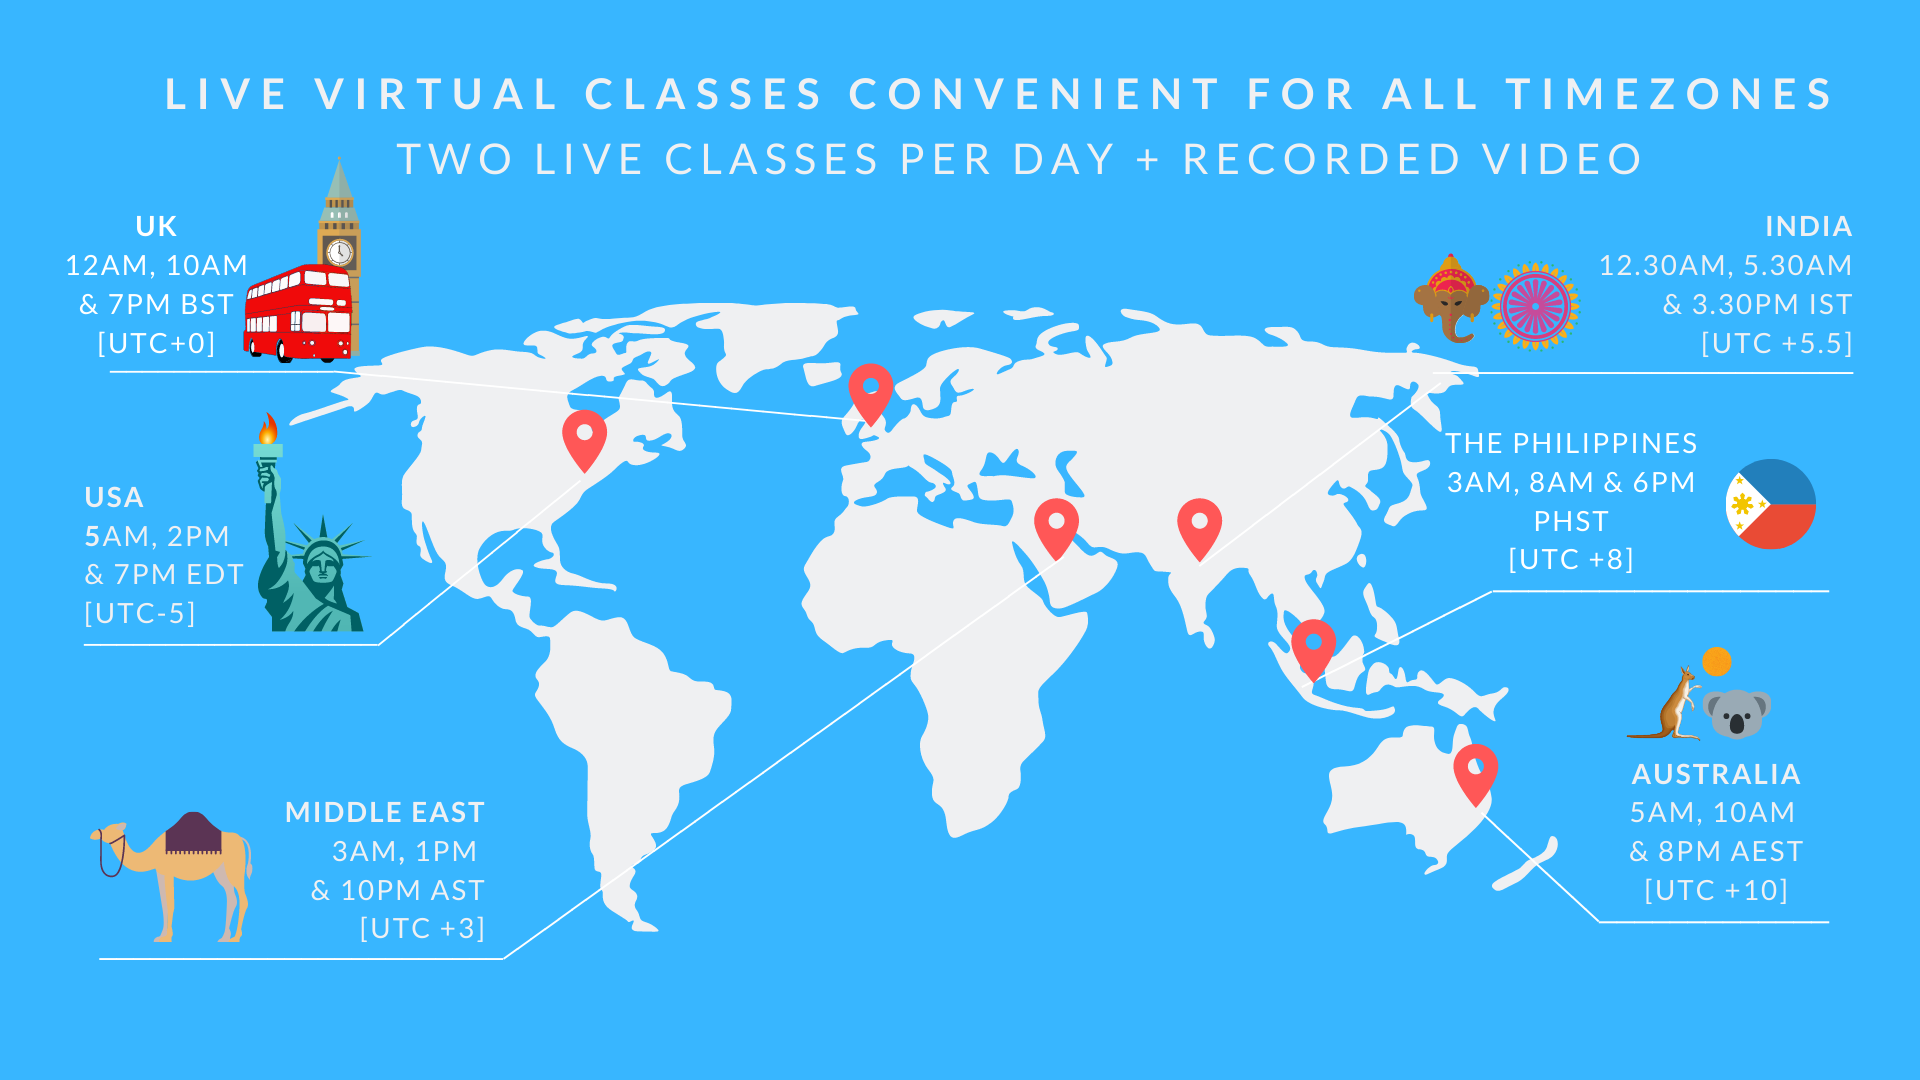 VIRTUAL%20CLASSES_%20WORLDWIDE_NEW%20%282%29.png?time=1605501220144